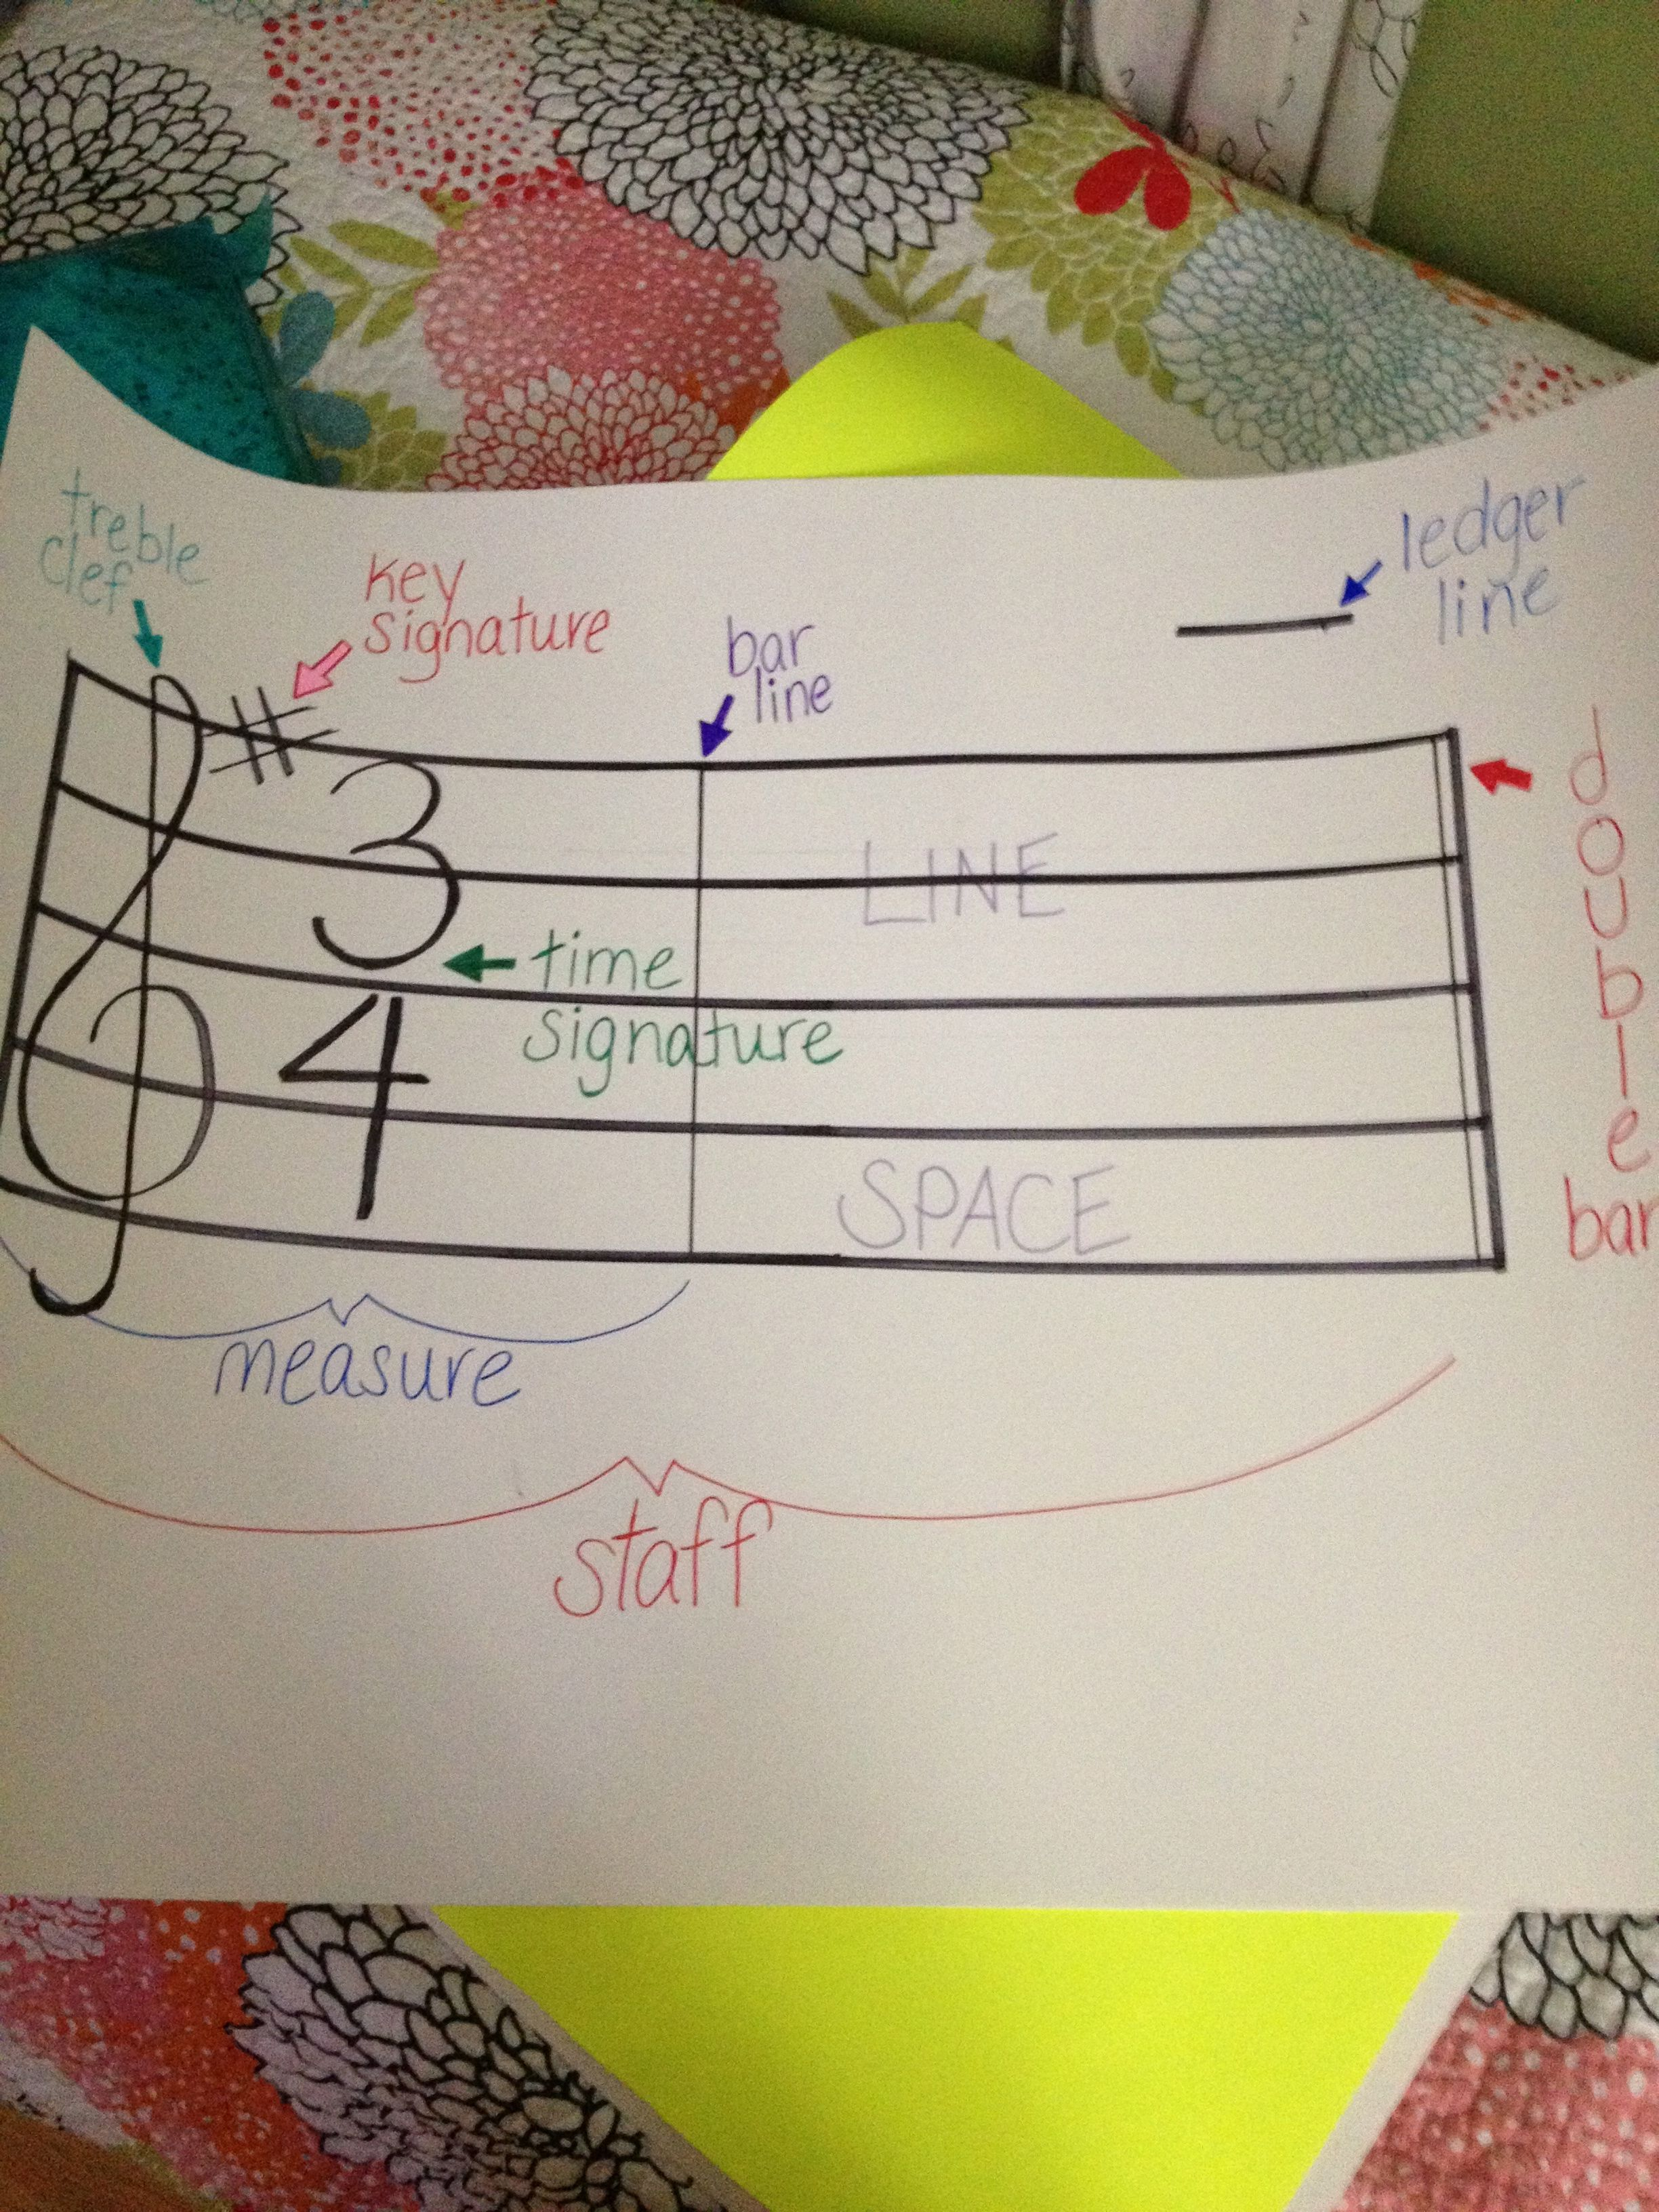 Really Simple Yet Extremely Useful Music Staff Poster For